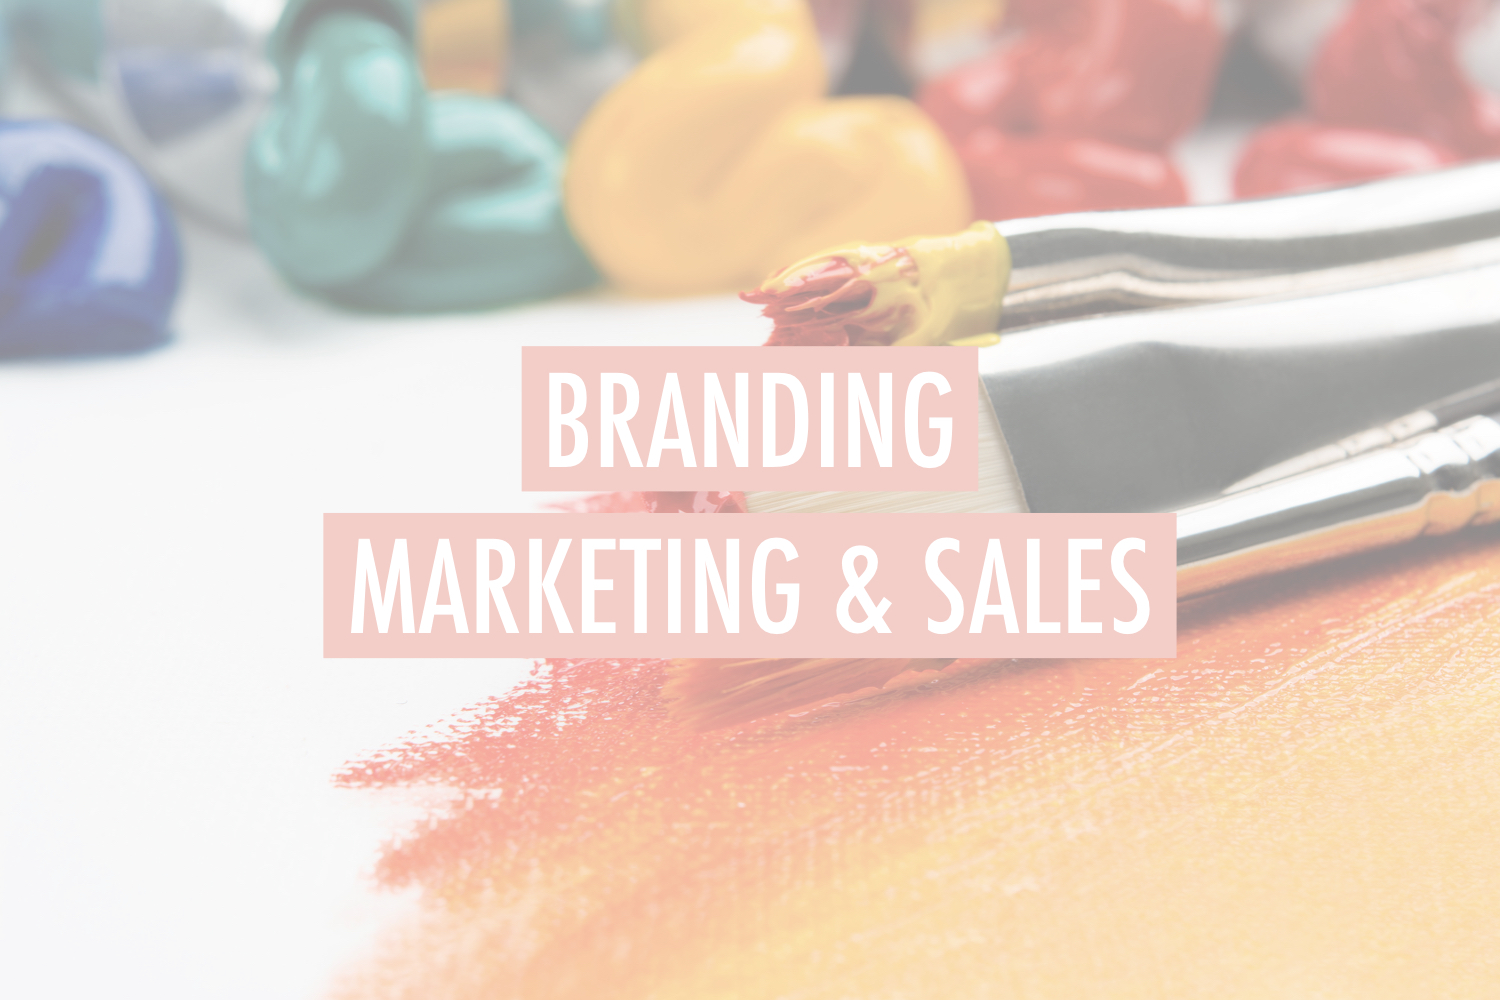 branding marketing sales  - stacy kessler